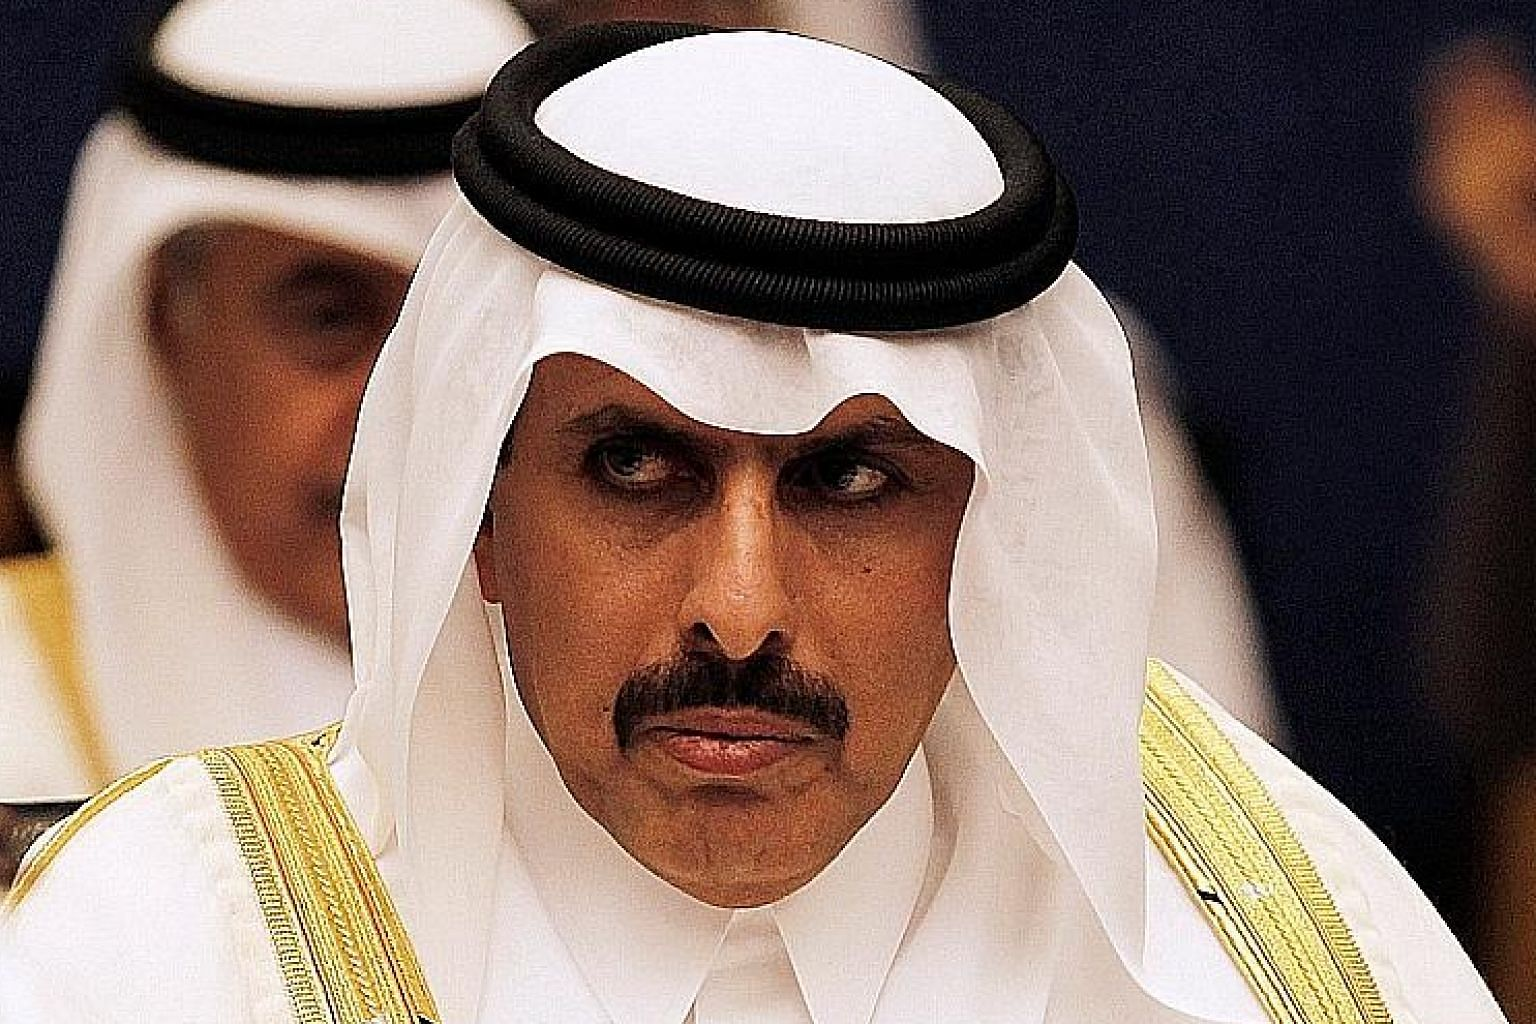 Central bank governor Sheikh Abdullah Saoud al-Thani said the US$340 billion in reserves will help Qatar survive.